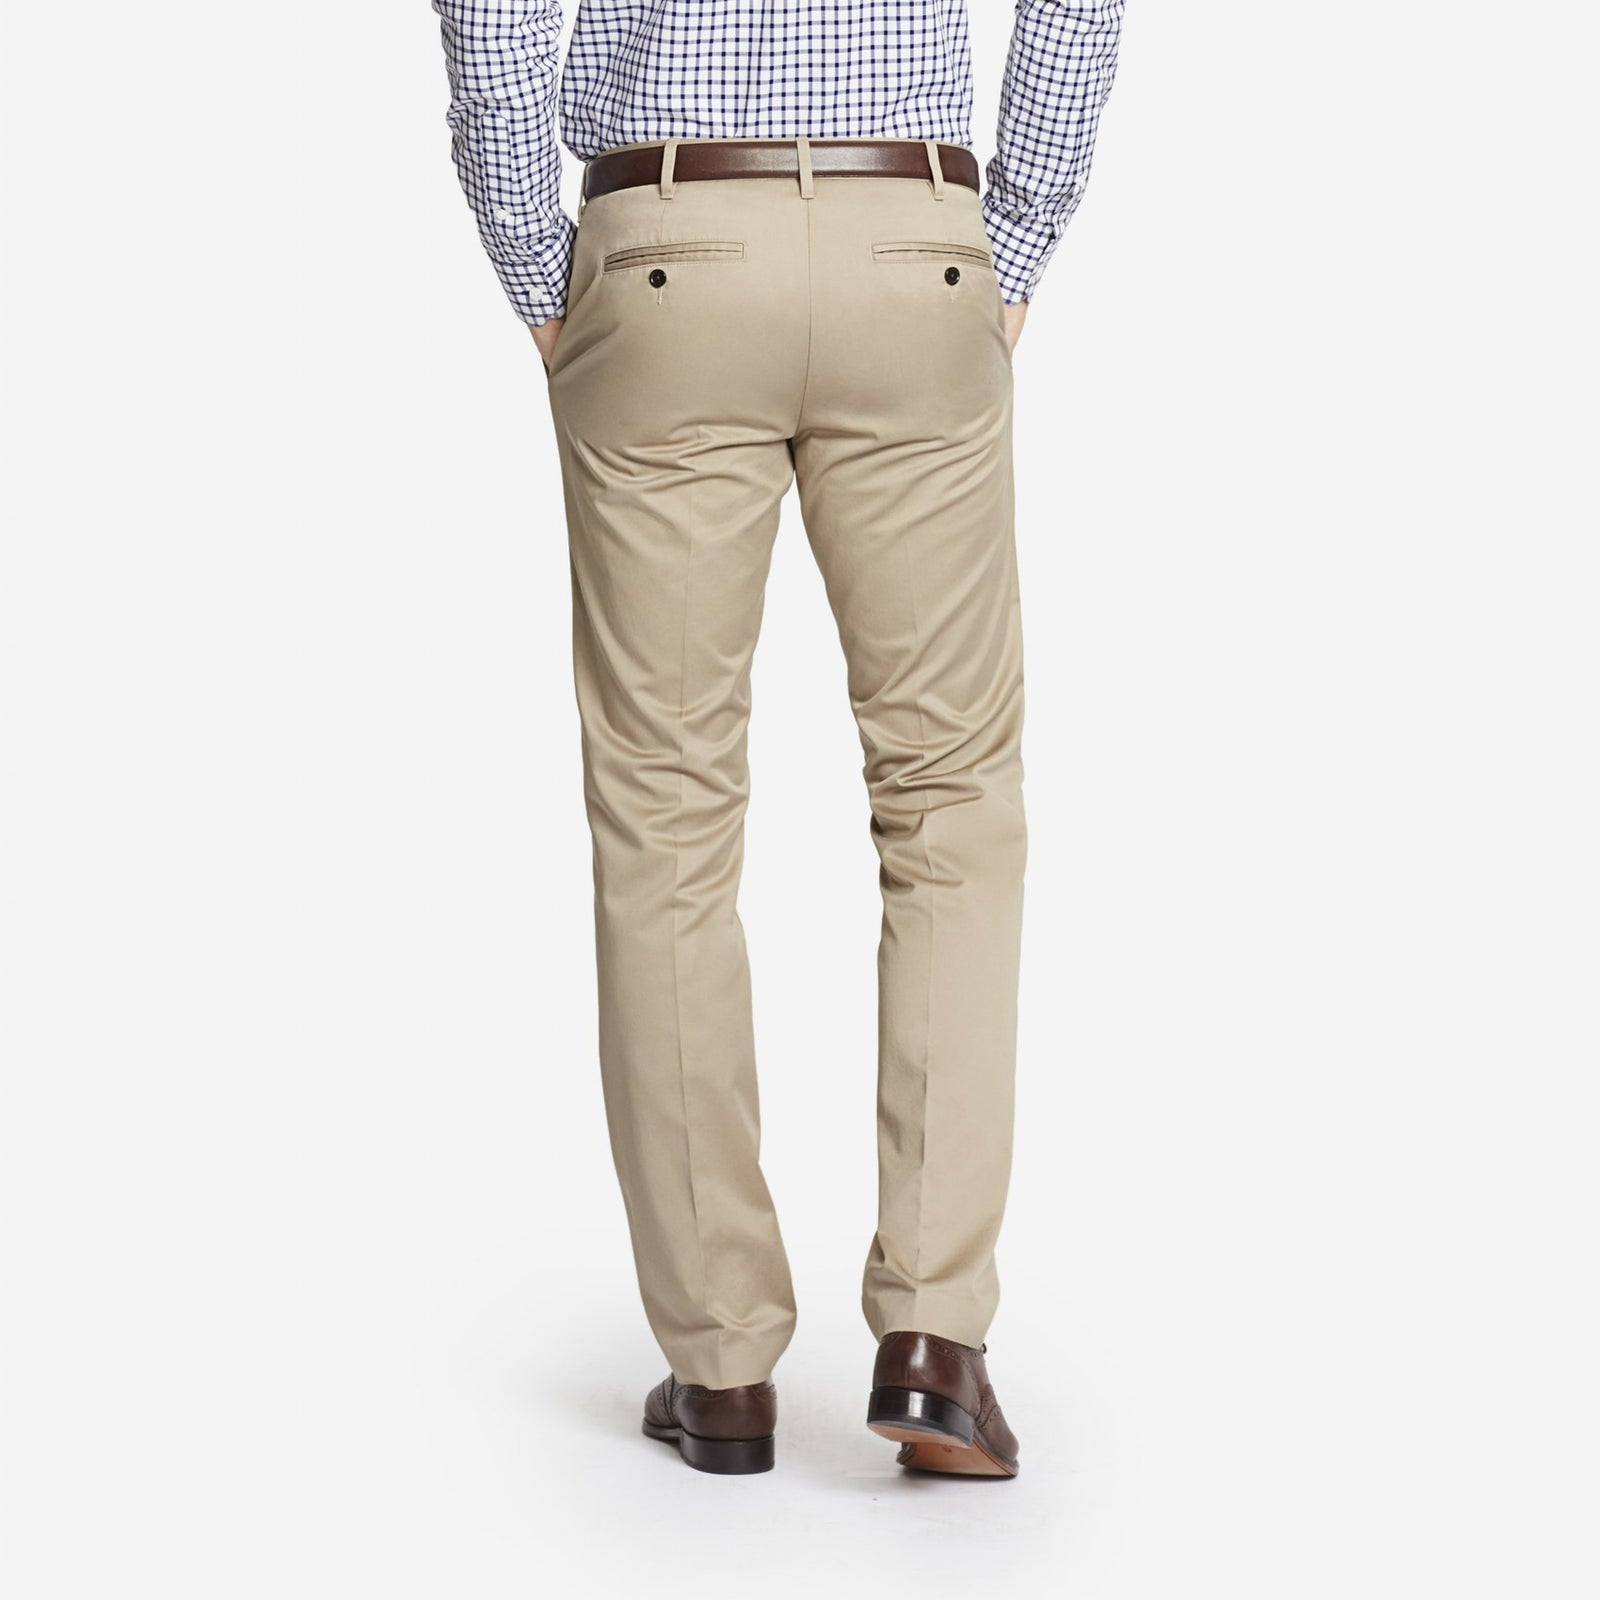 Tan Bespoke Tailored Cotton Trousers